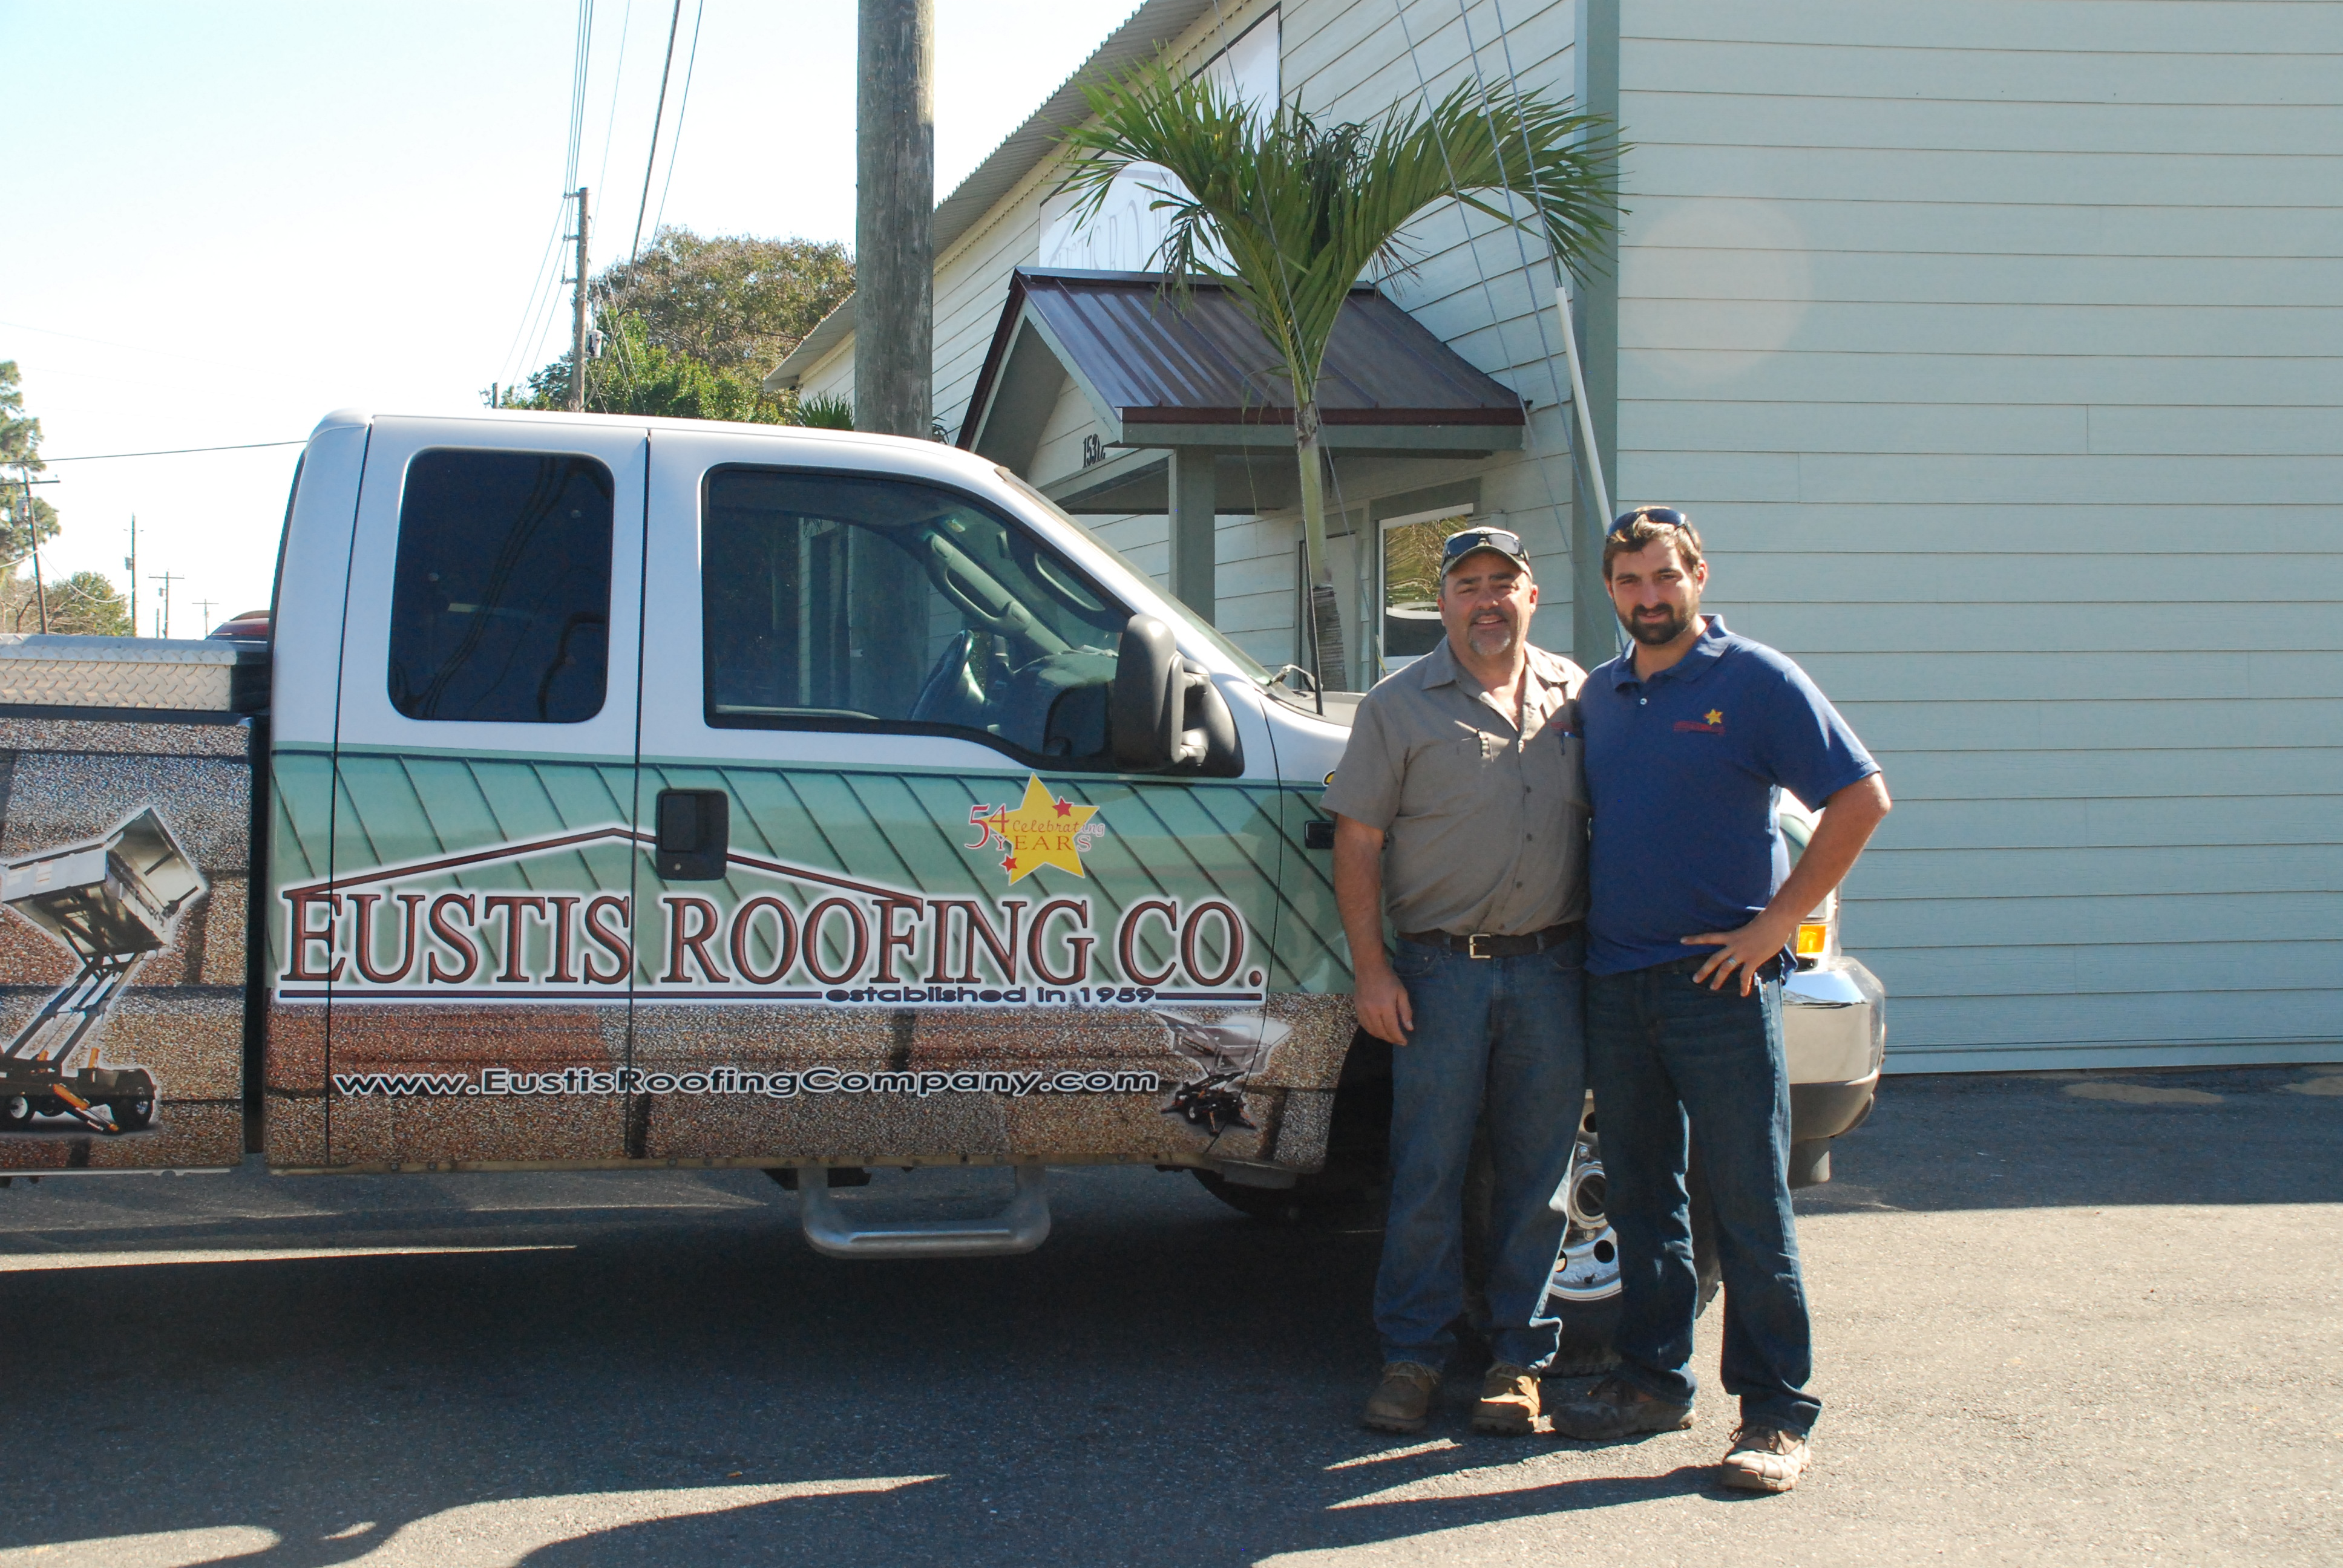 Eustis Roofing Company Inc 15312 Old Us Highway 441 Tavares Fl 32778 Yp